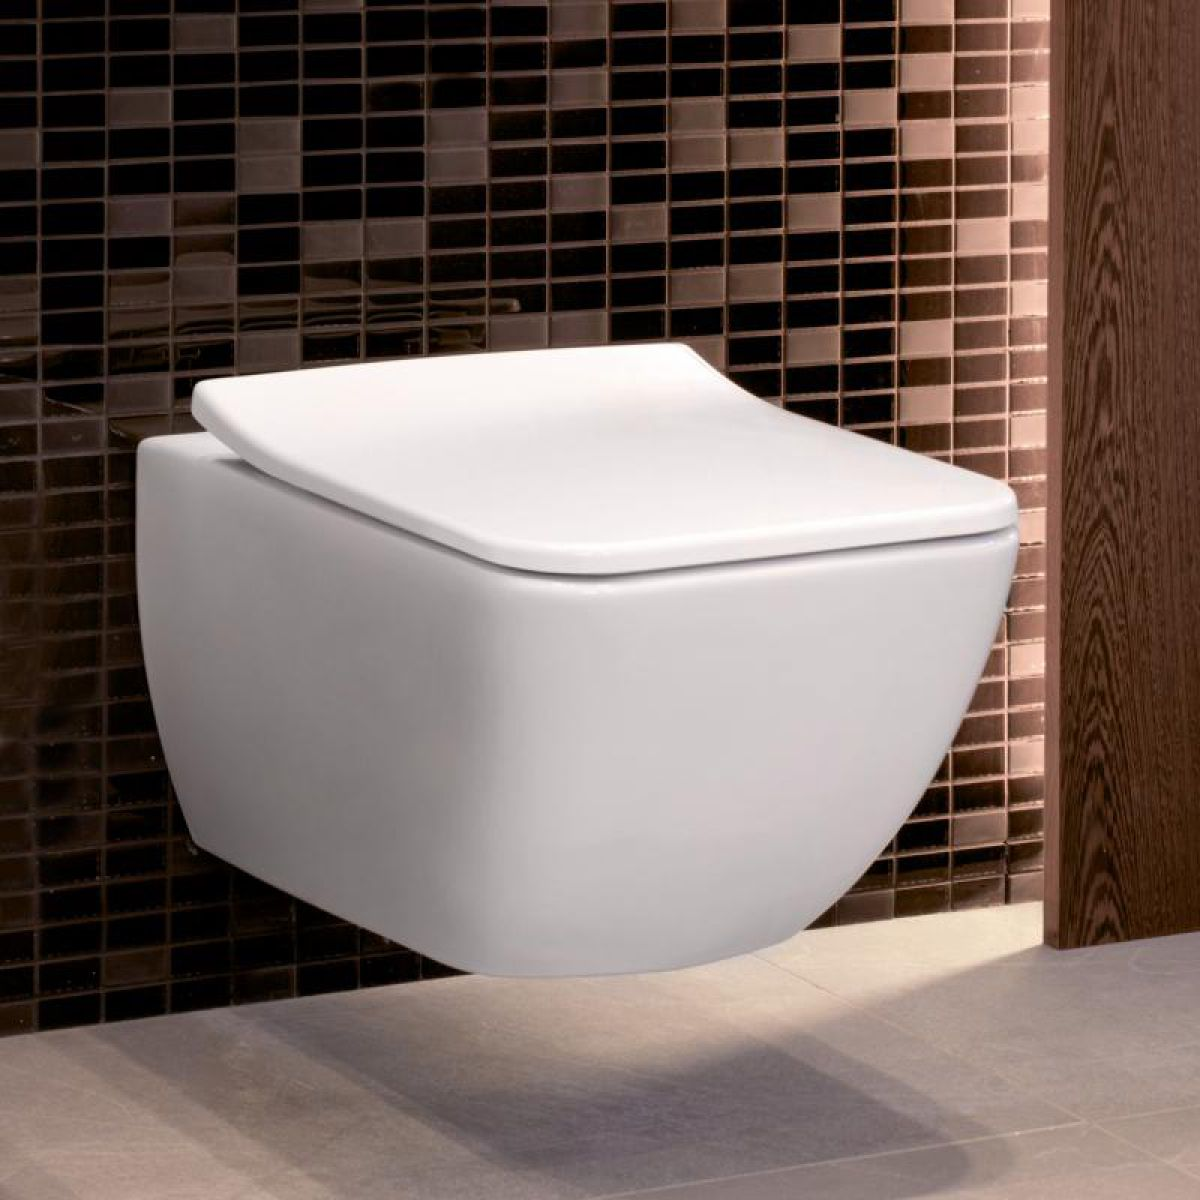 villeroy u0026 boch venticello rimless wall hung toilet - Wall Hung Toilet